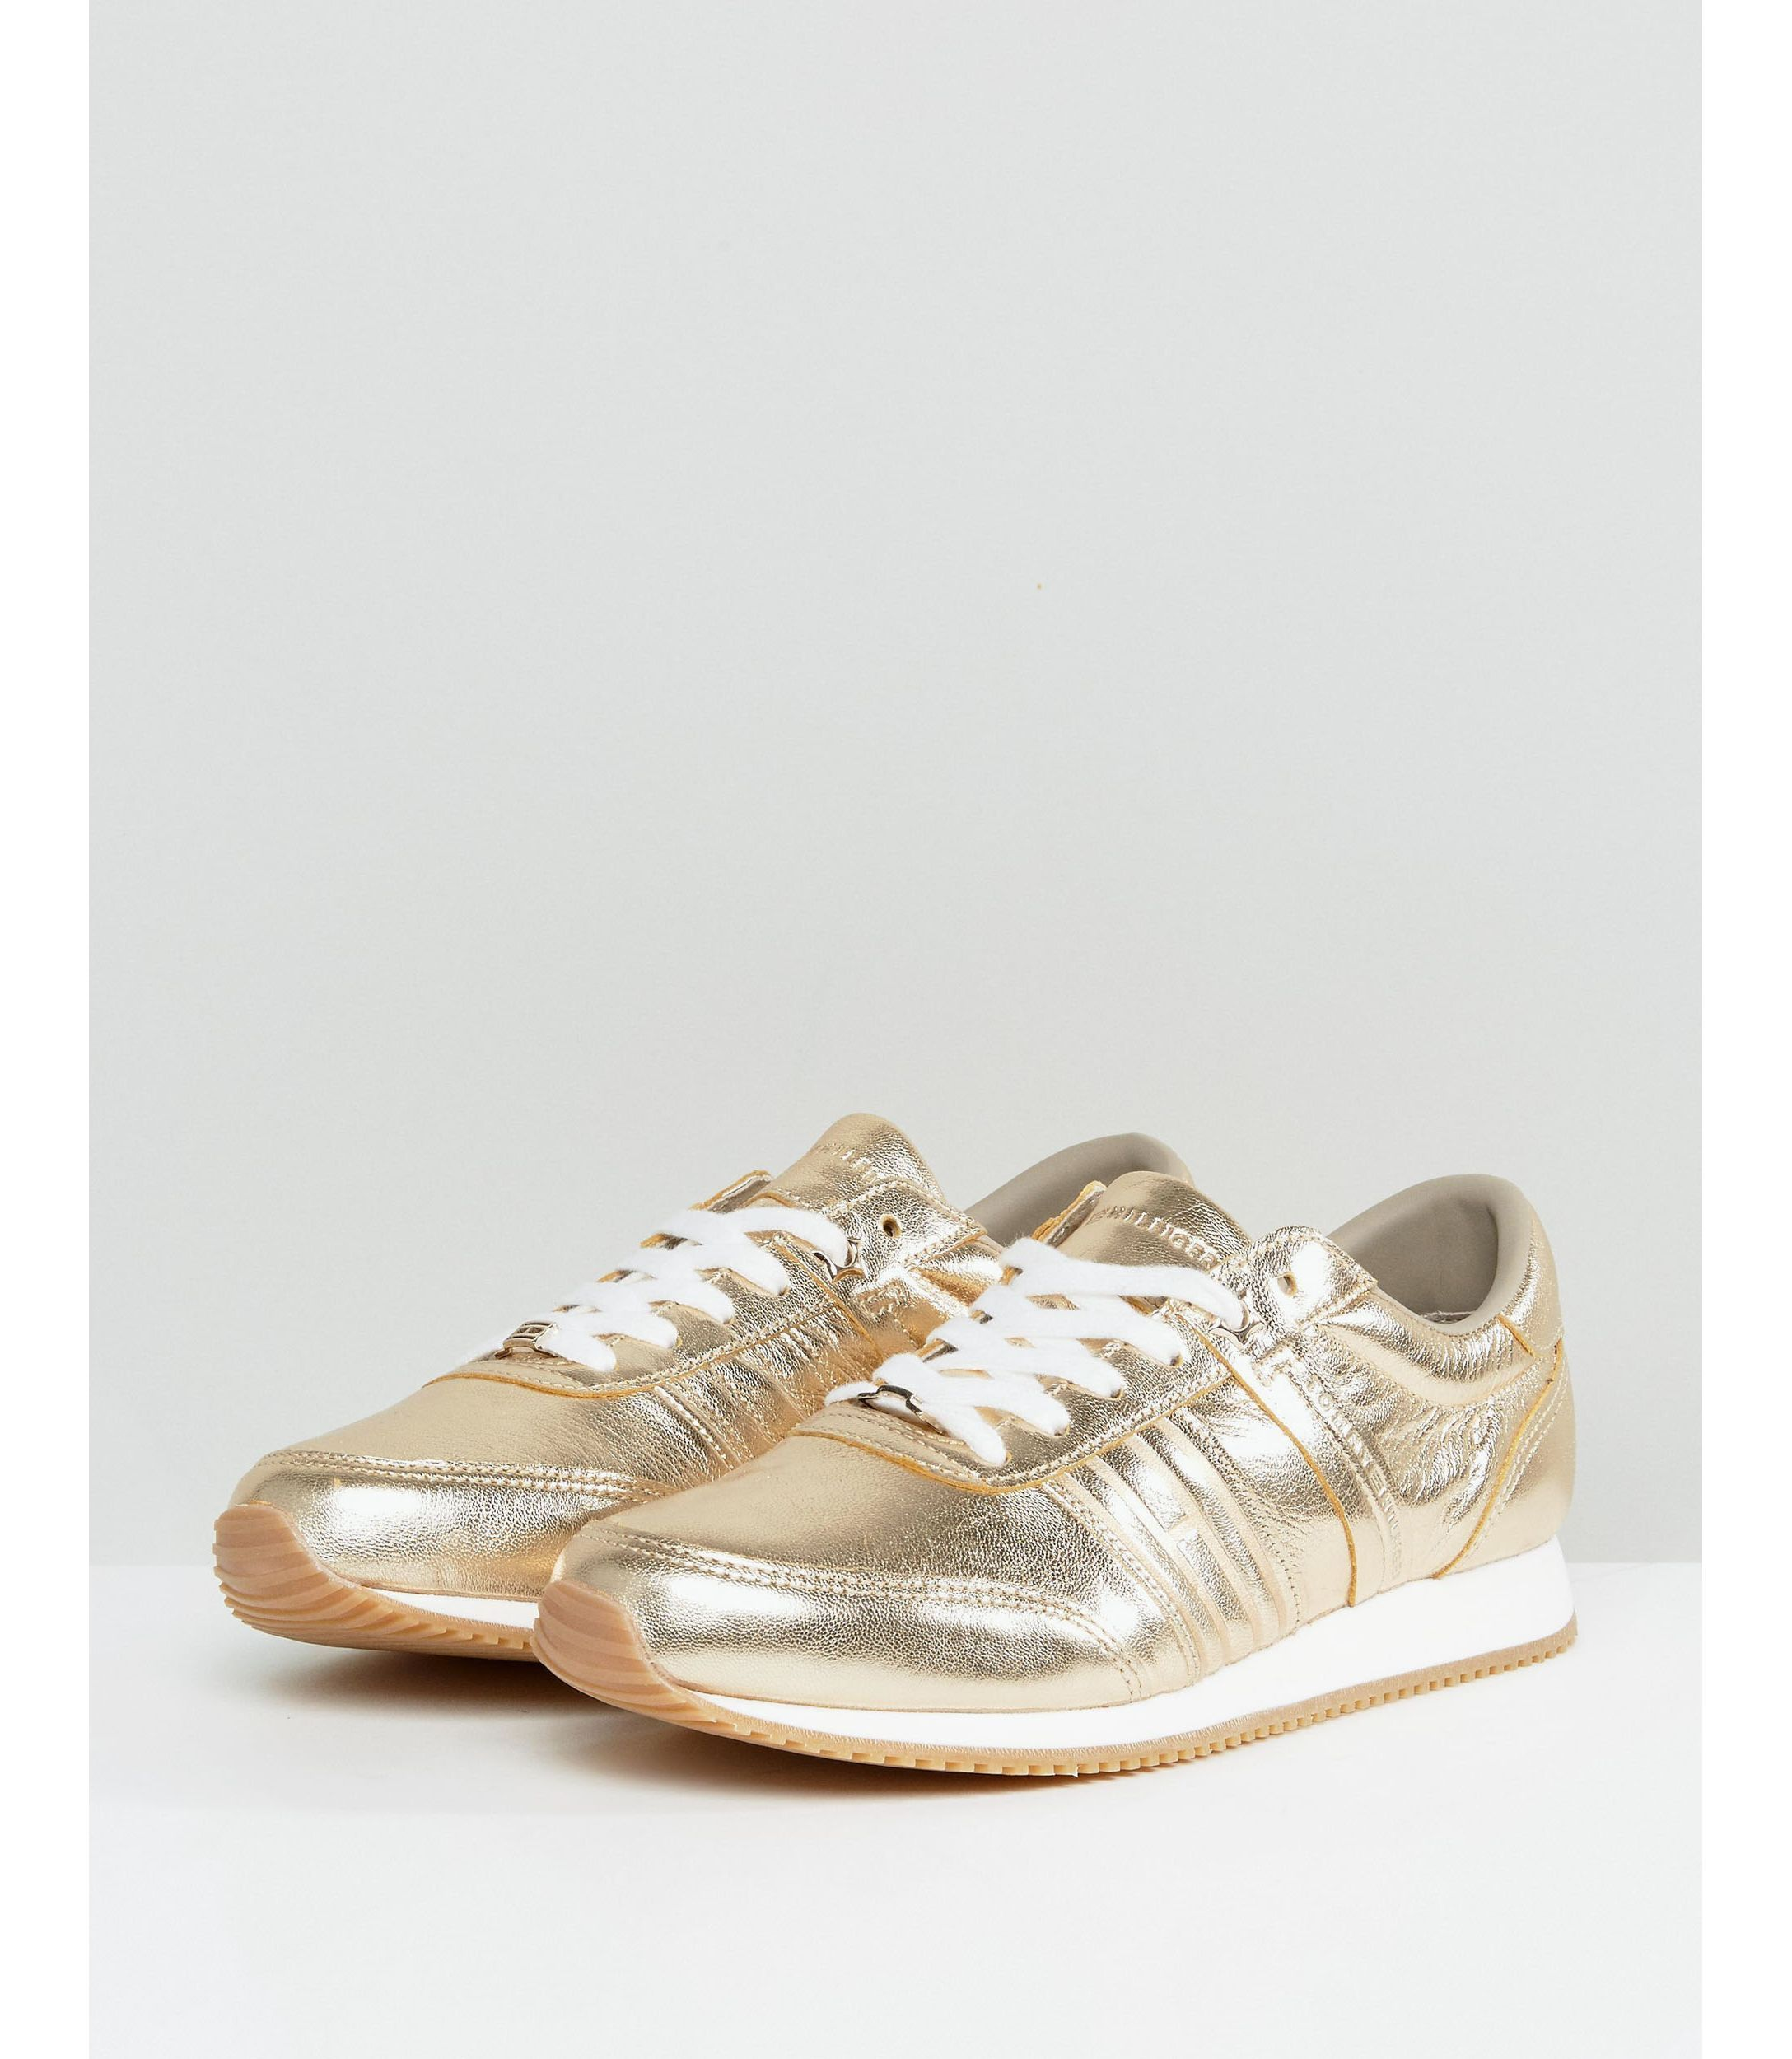 ★ASOSセレクト★Tommy ジーンズ Lace up メタリック Trainer